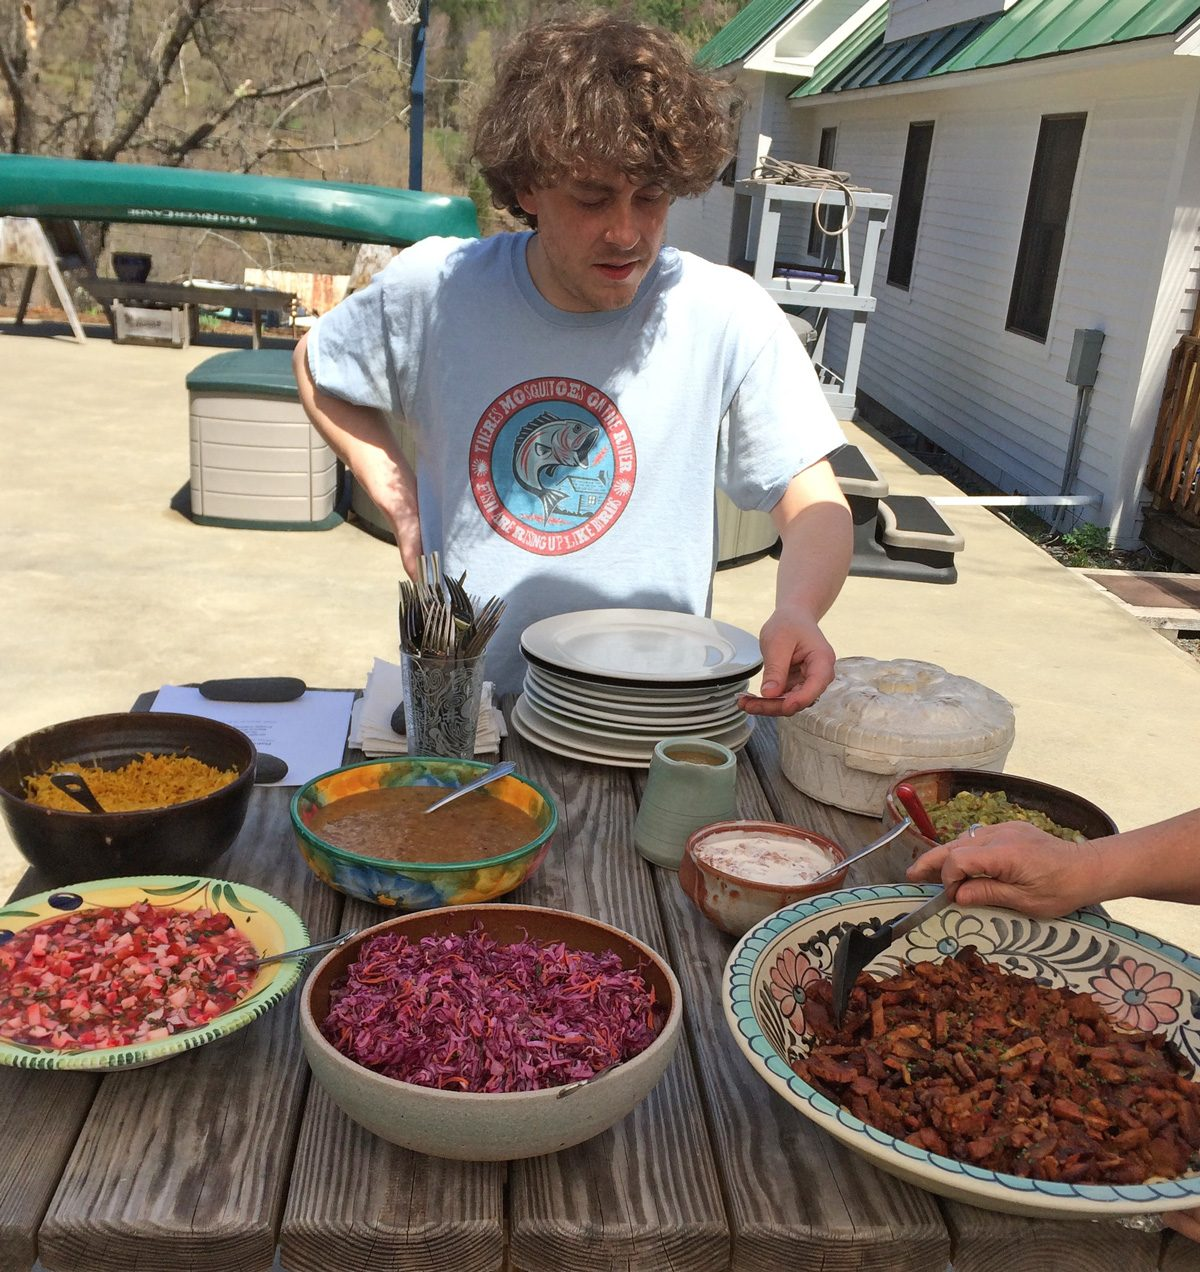 Chef Spencer R.B. Cone caters the Vermont workshop lunches.